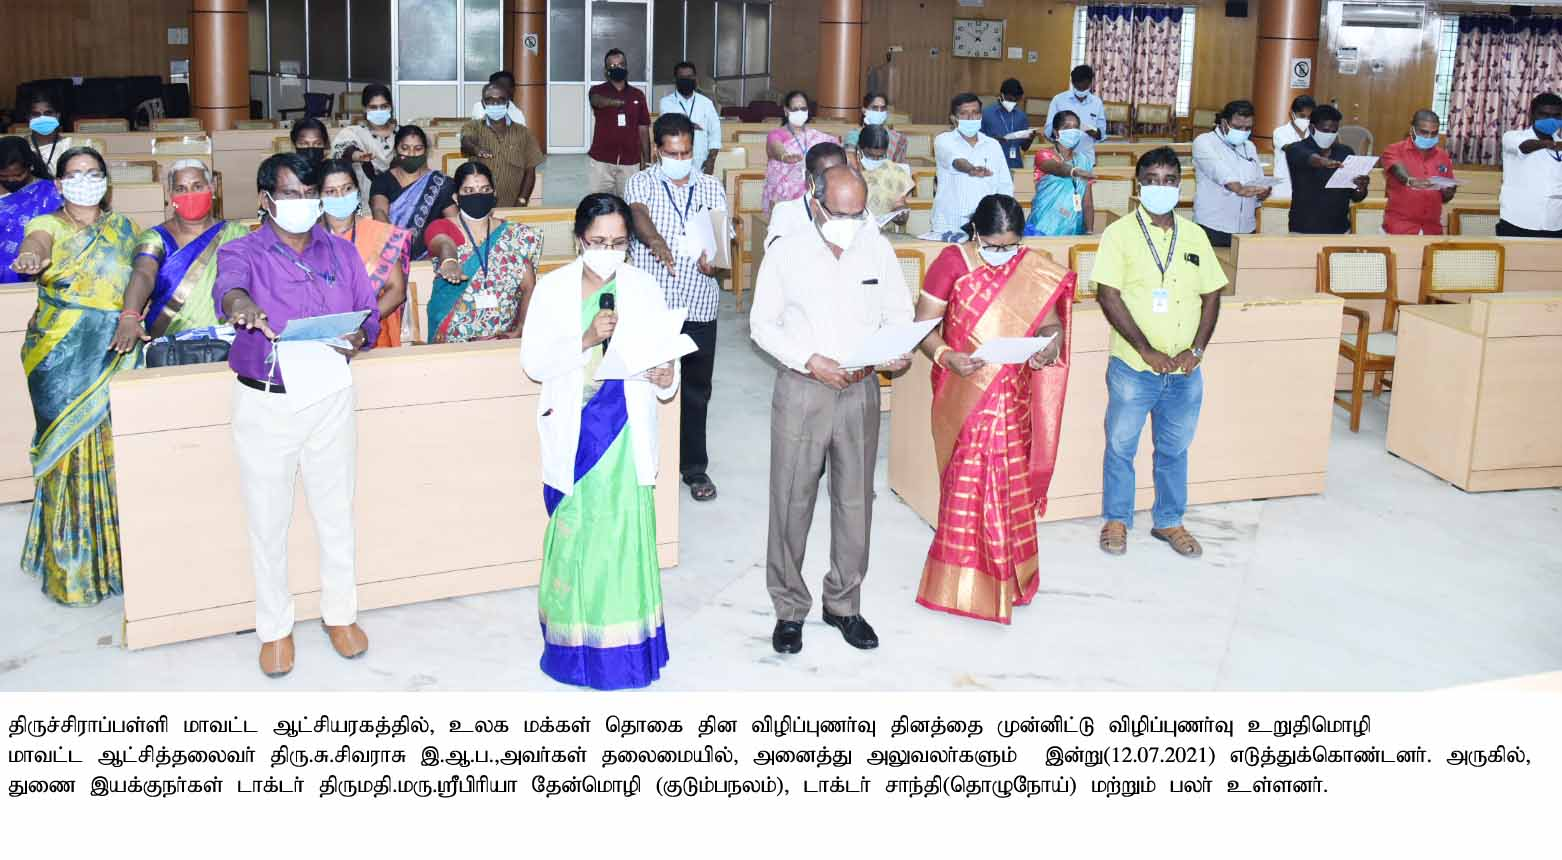 Awareness Pledge on the eves of Worlds Population Day